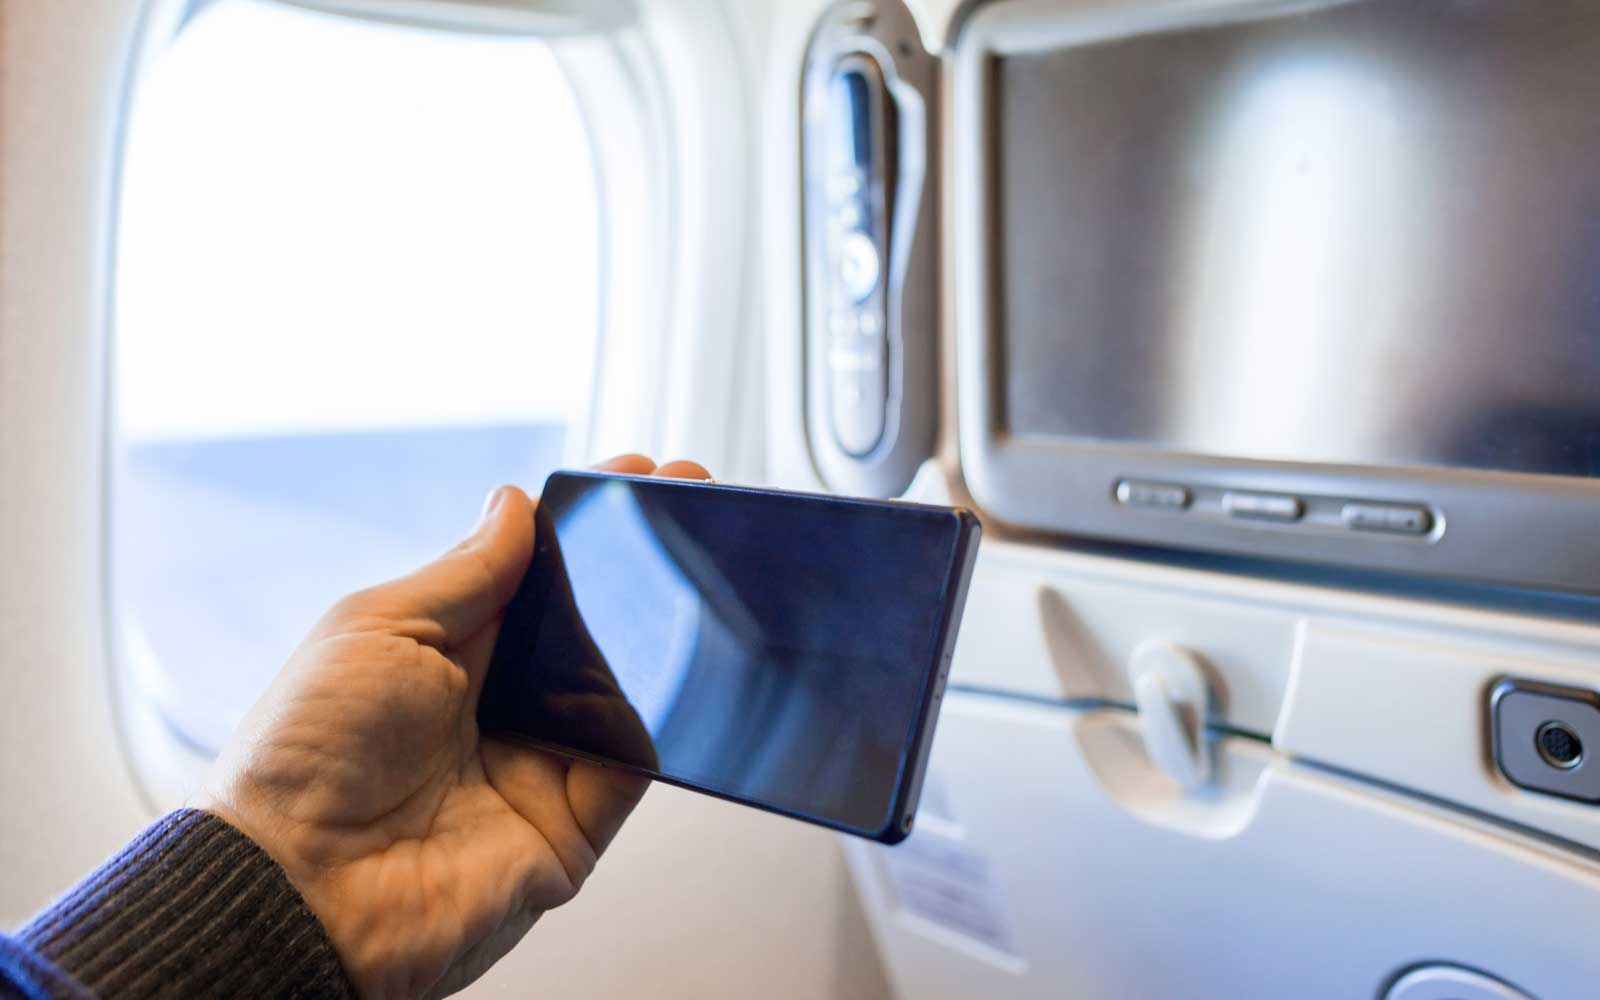 Holding smartphone on an airplane